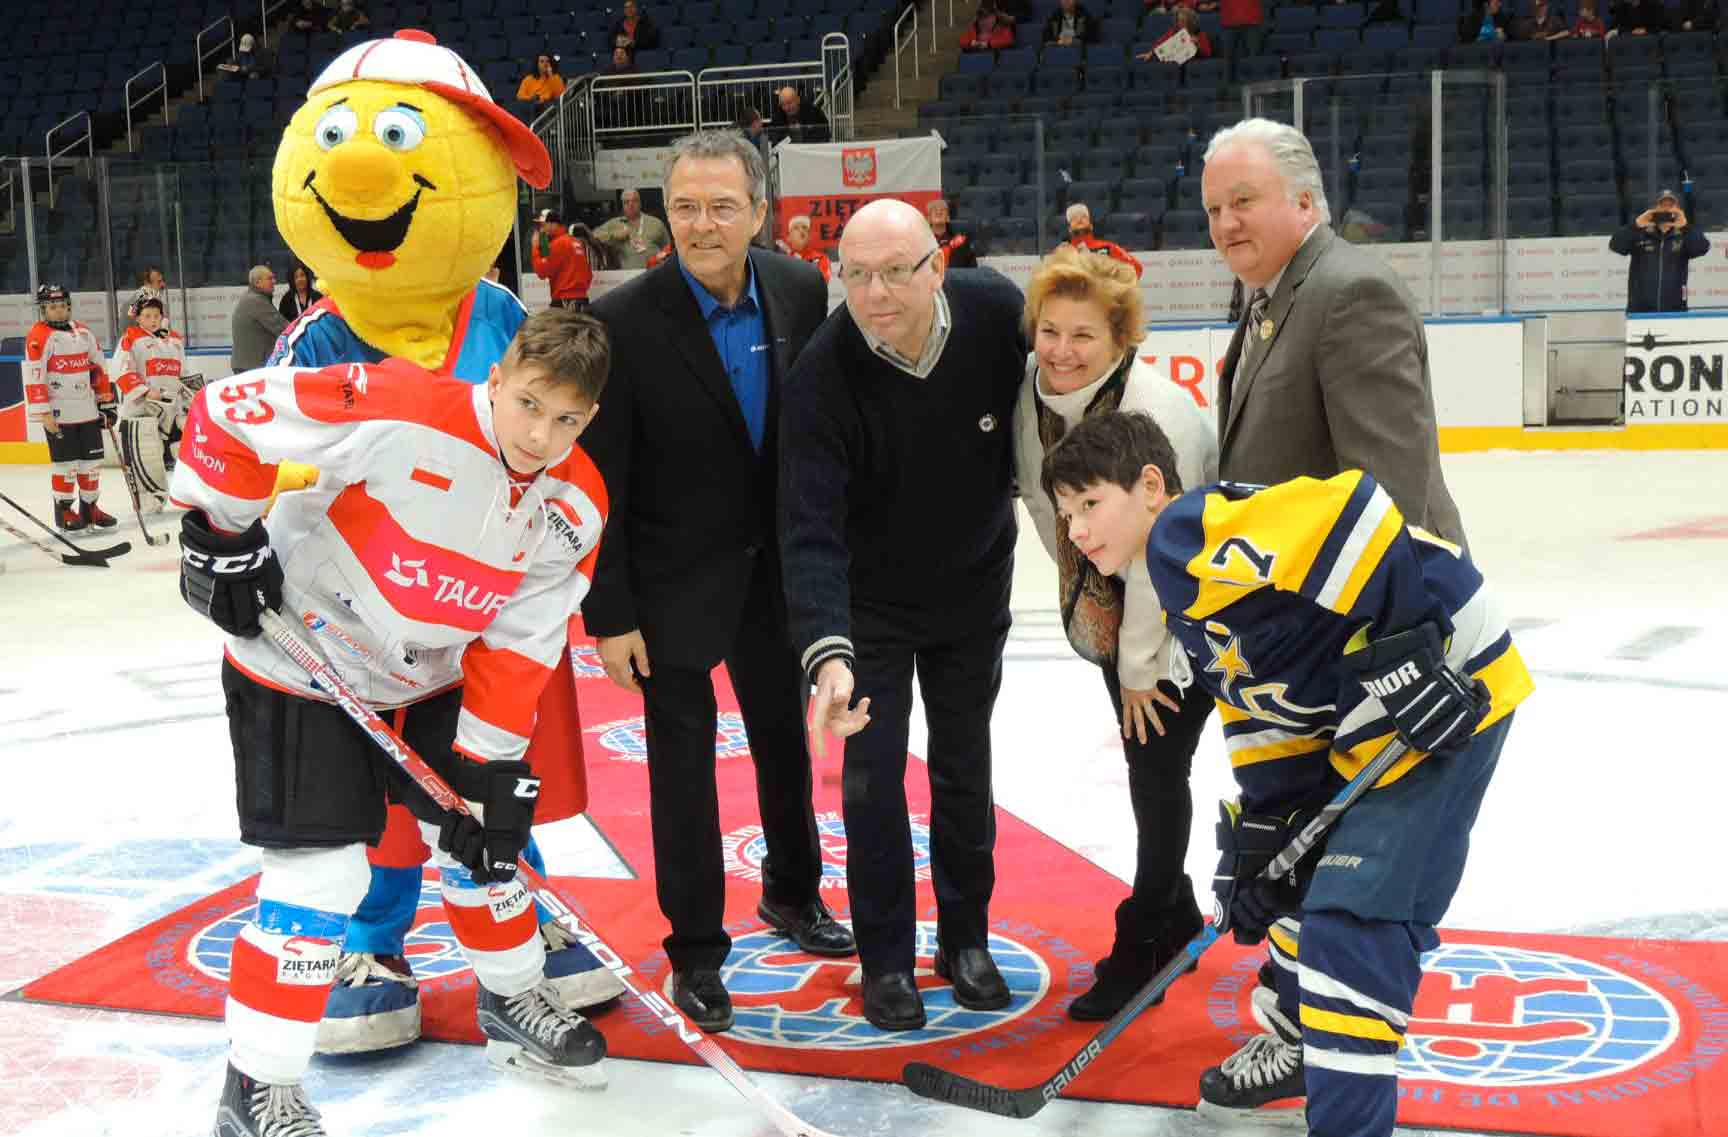 Tournoi international de hockey Pee-Wee